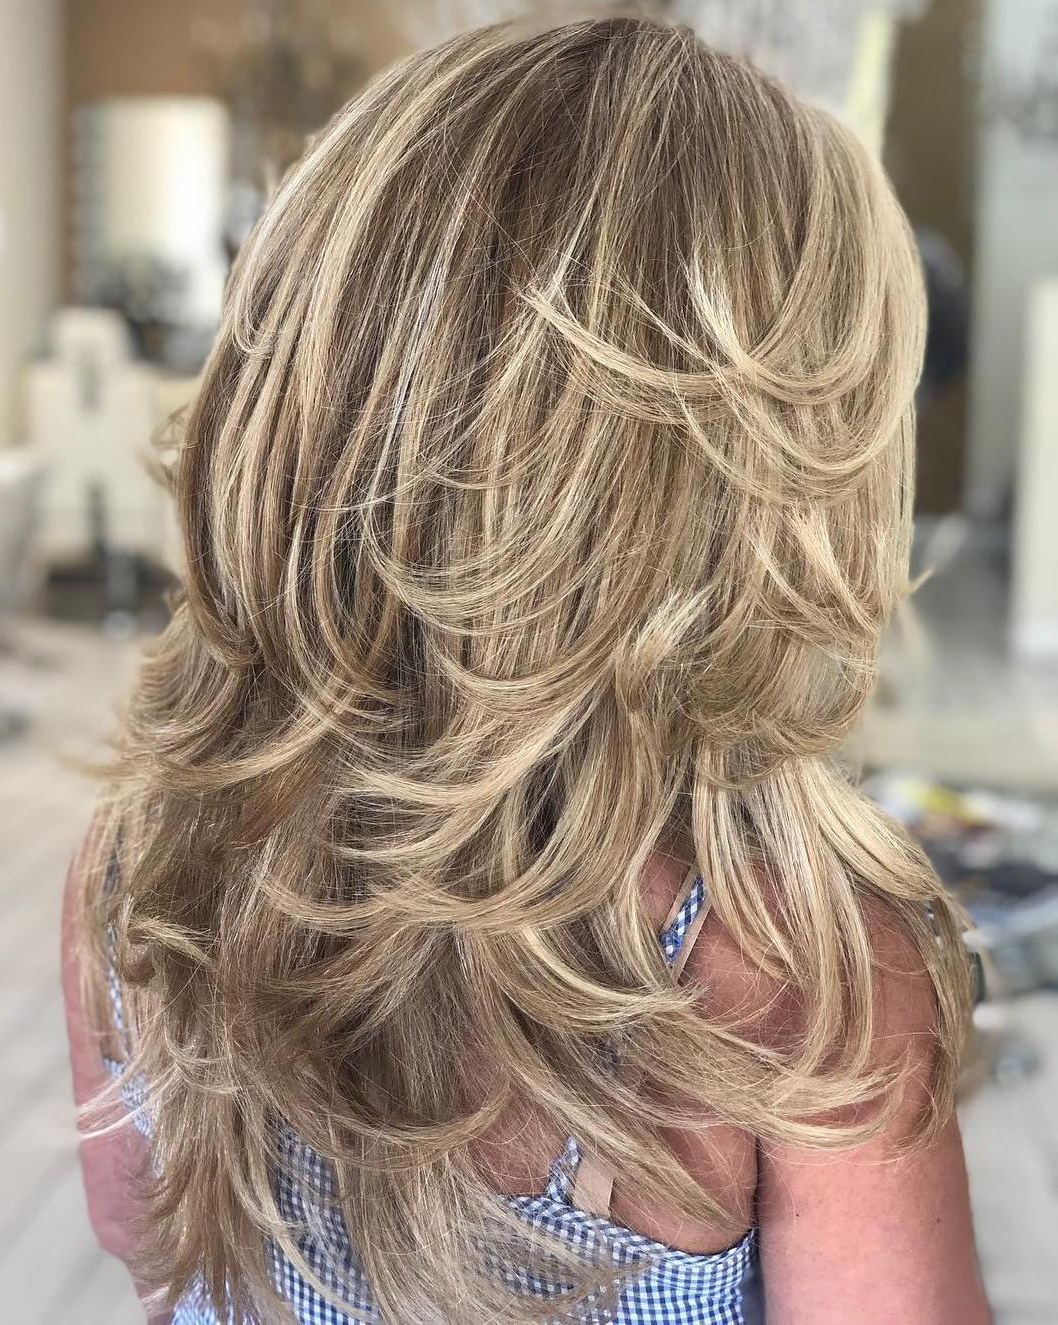 2020 Straight Layered Hairstyles With Twisted Top Regarding Trendy Hairstyles And Haircuts For Long Layered Hair To Rock (View 13 of 20)